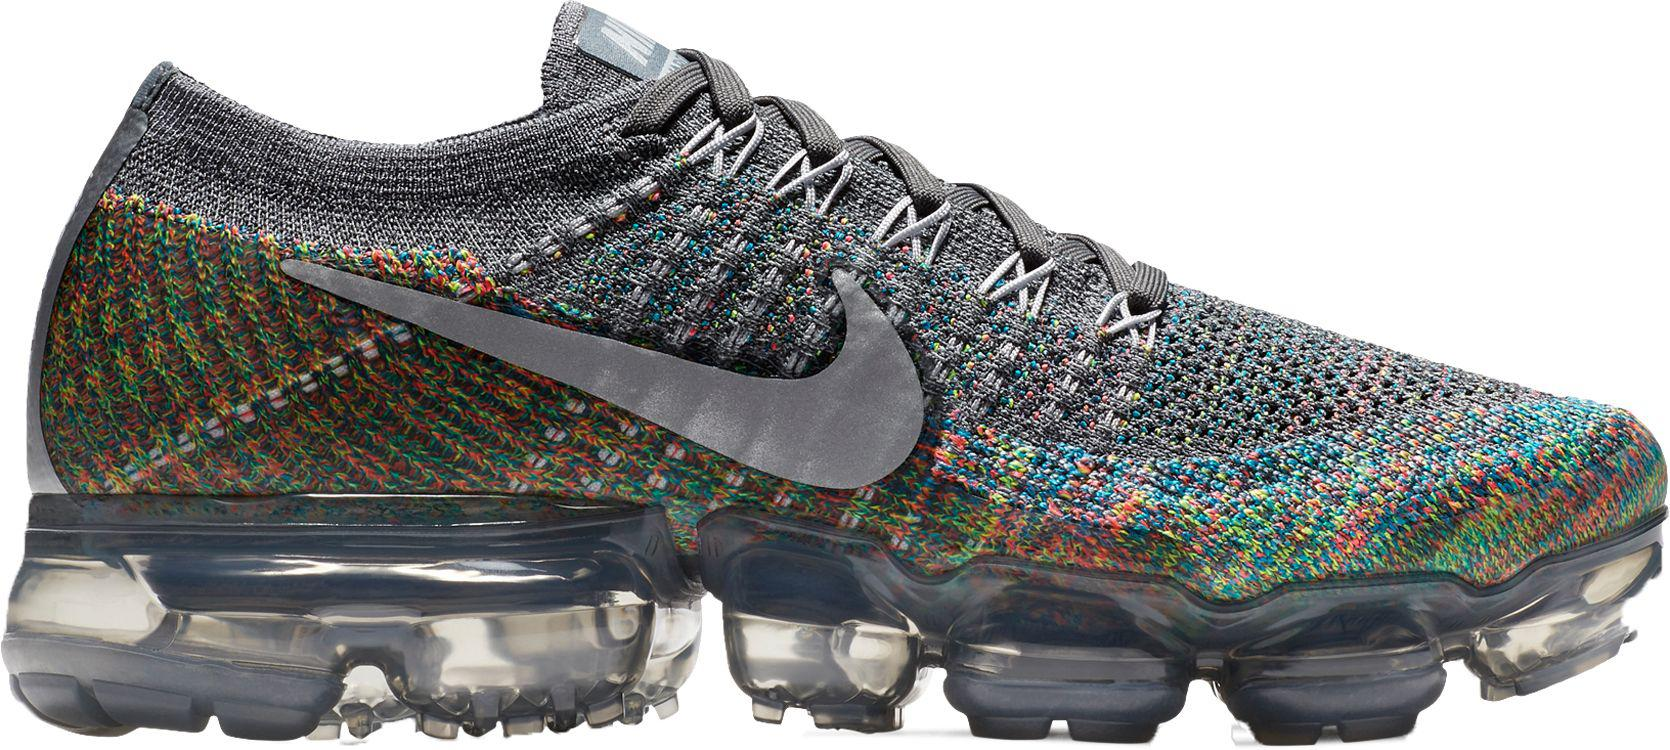 062121785cc60 Lyst - Nike Air Vapormax Flyknit Running Shoes in Gray